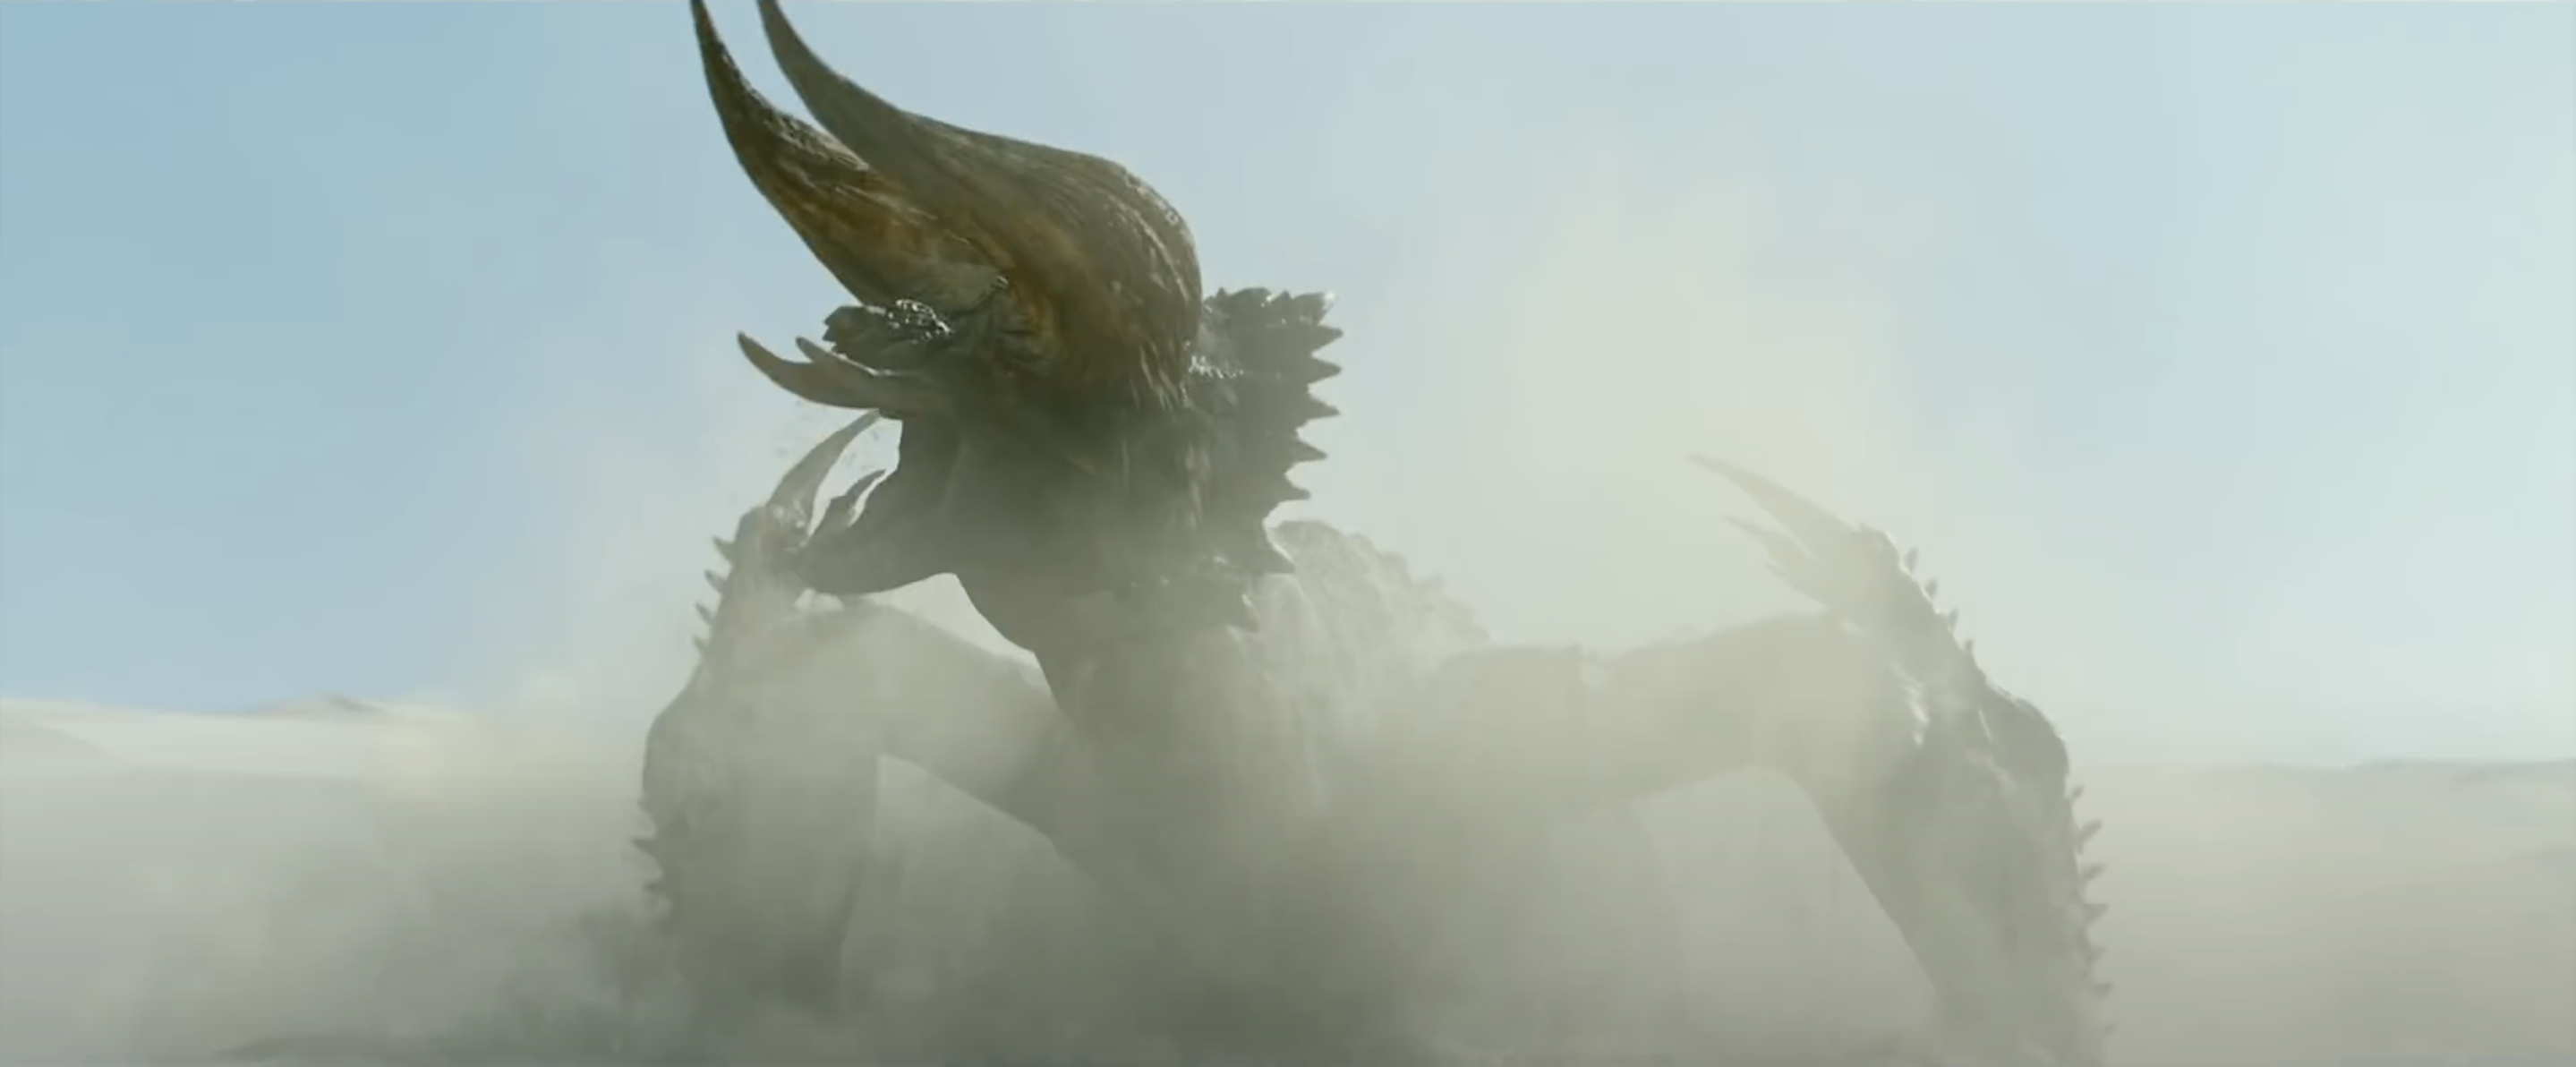 Monster Hunter : Milla Jovovich face à un gros monstre dans le premier teaser